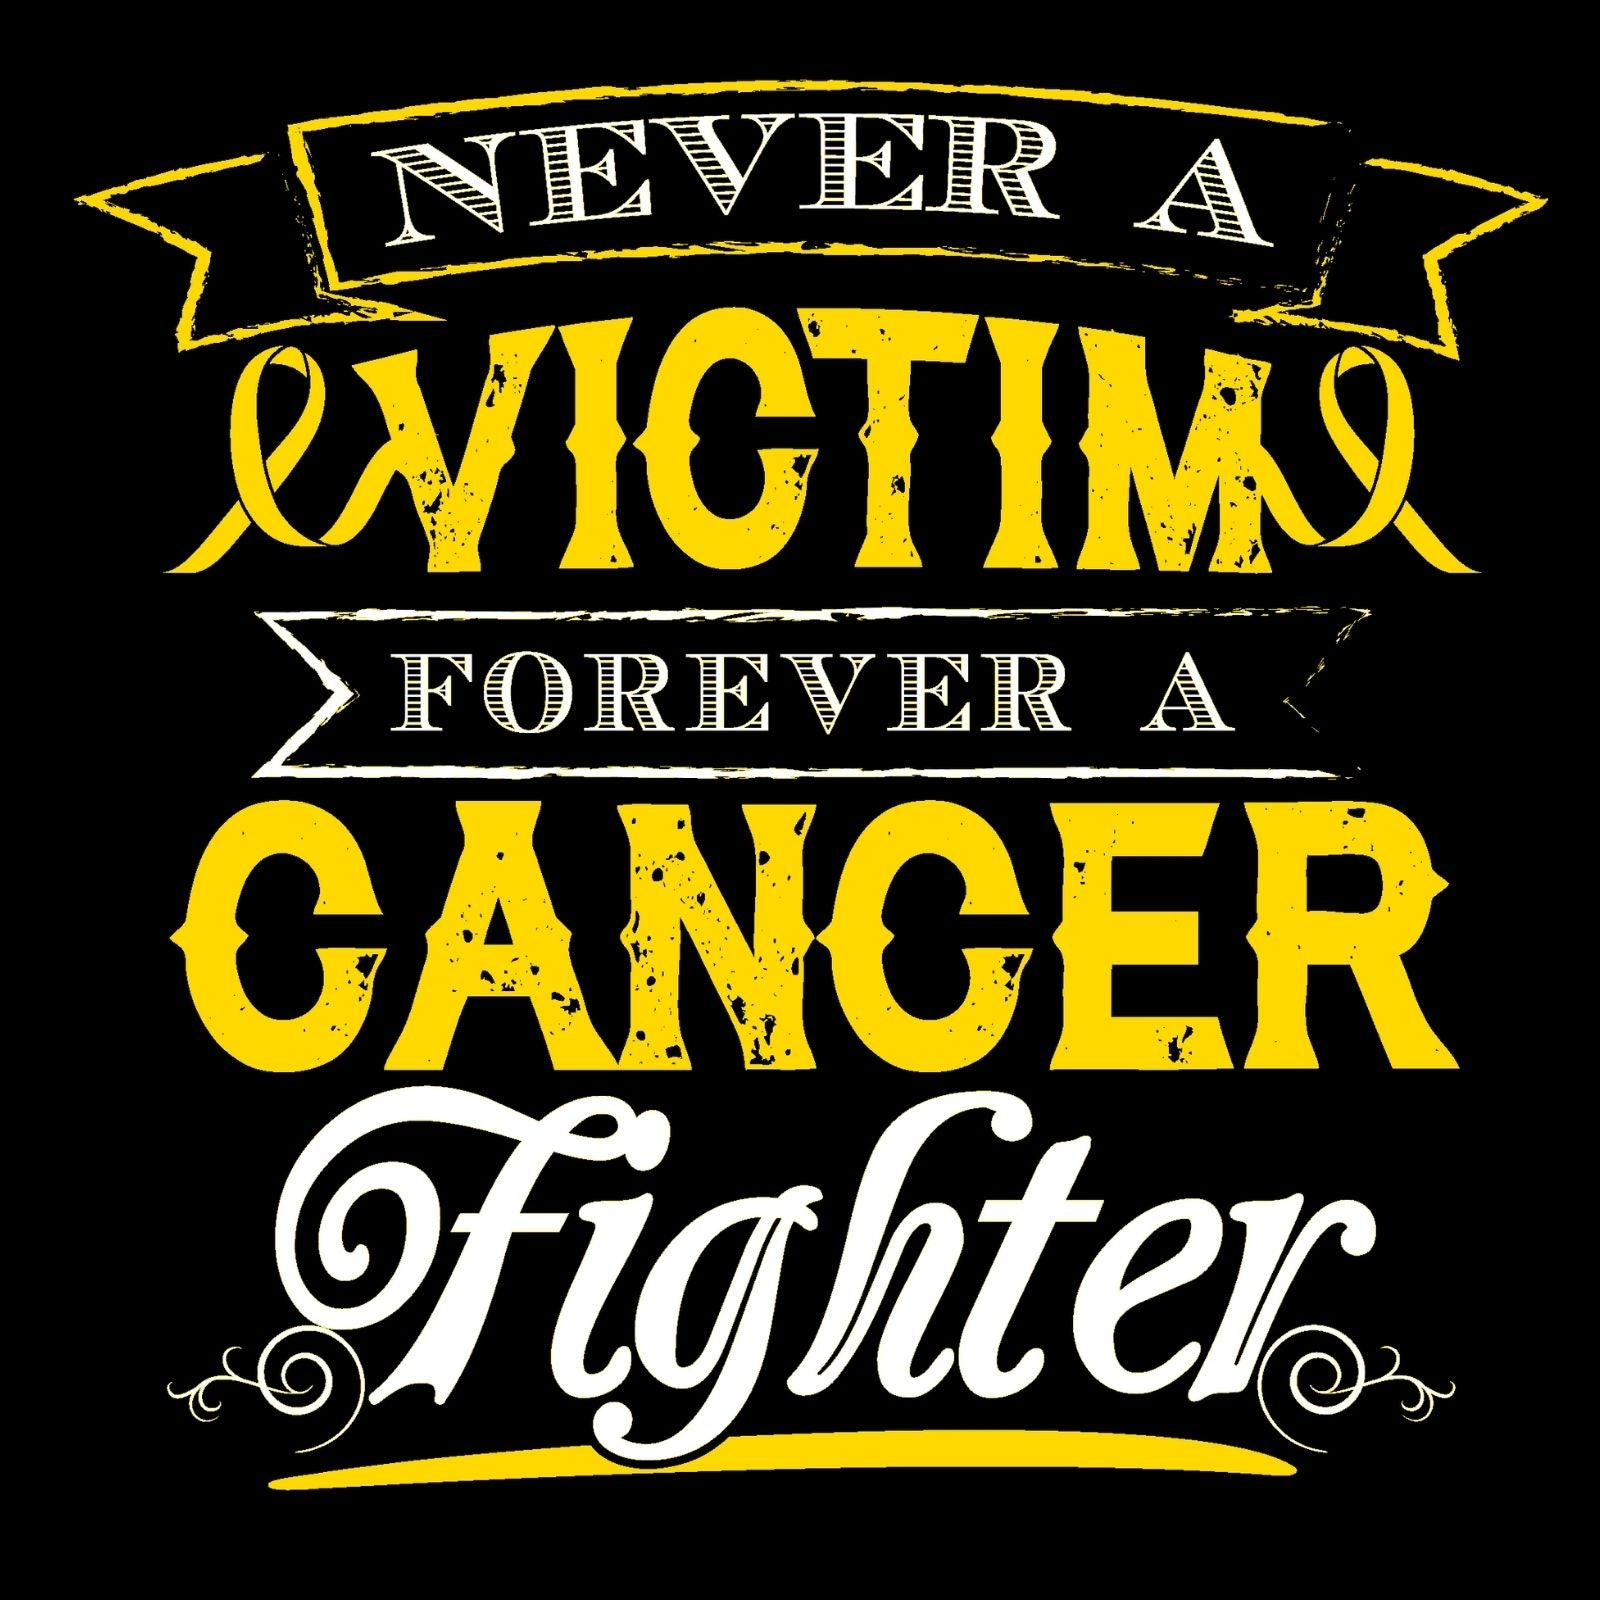 Never A Victim Forever A Cancer Fighter 2 - Bastard Graphics